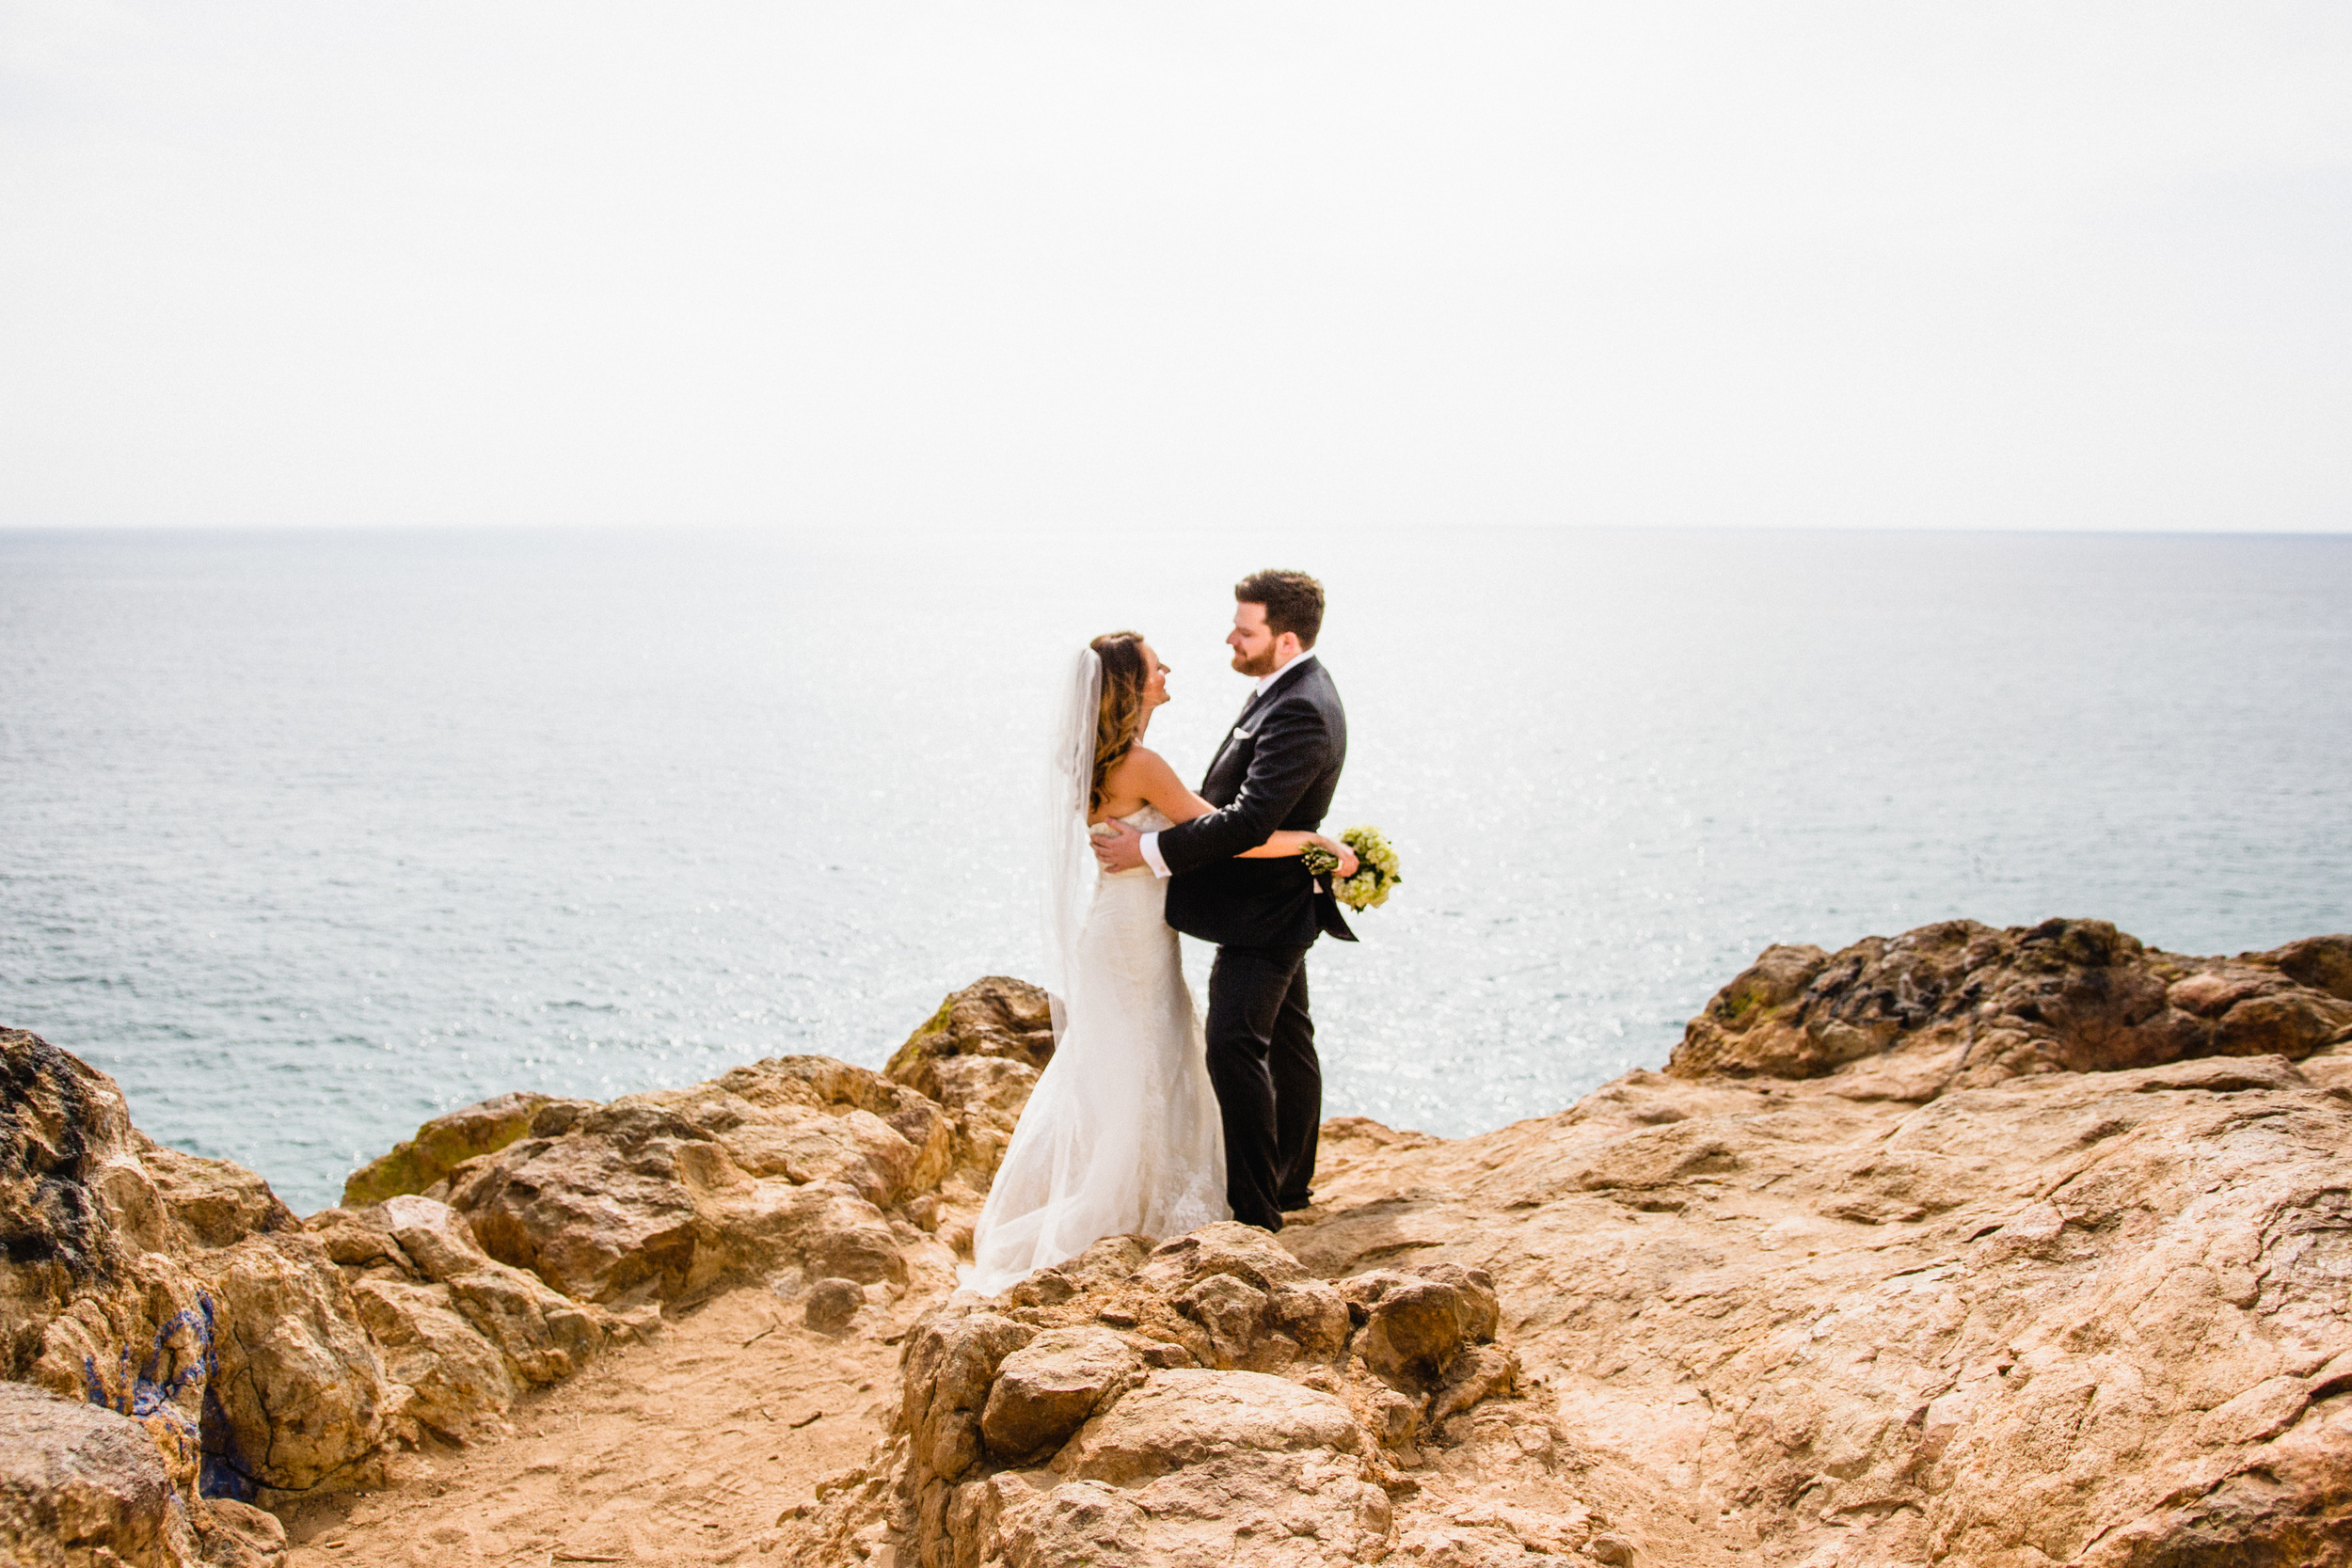 Wedding photography. DIY wedding at Point Dume Malibu. Bride and groom stare into each other's eyes overlooking the ocean